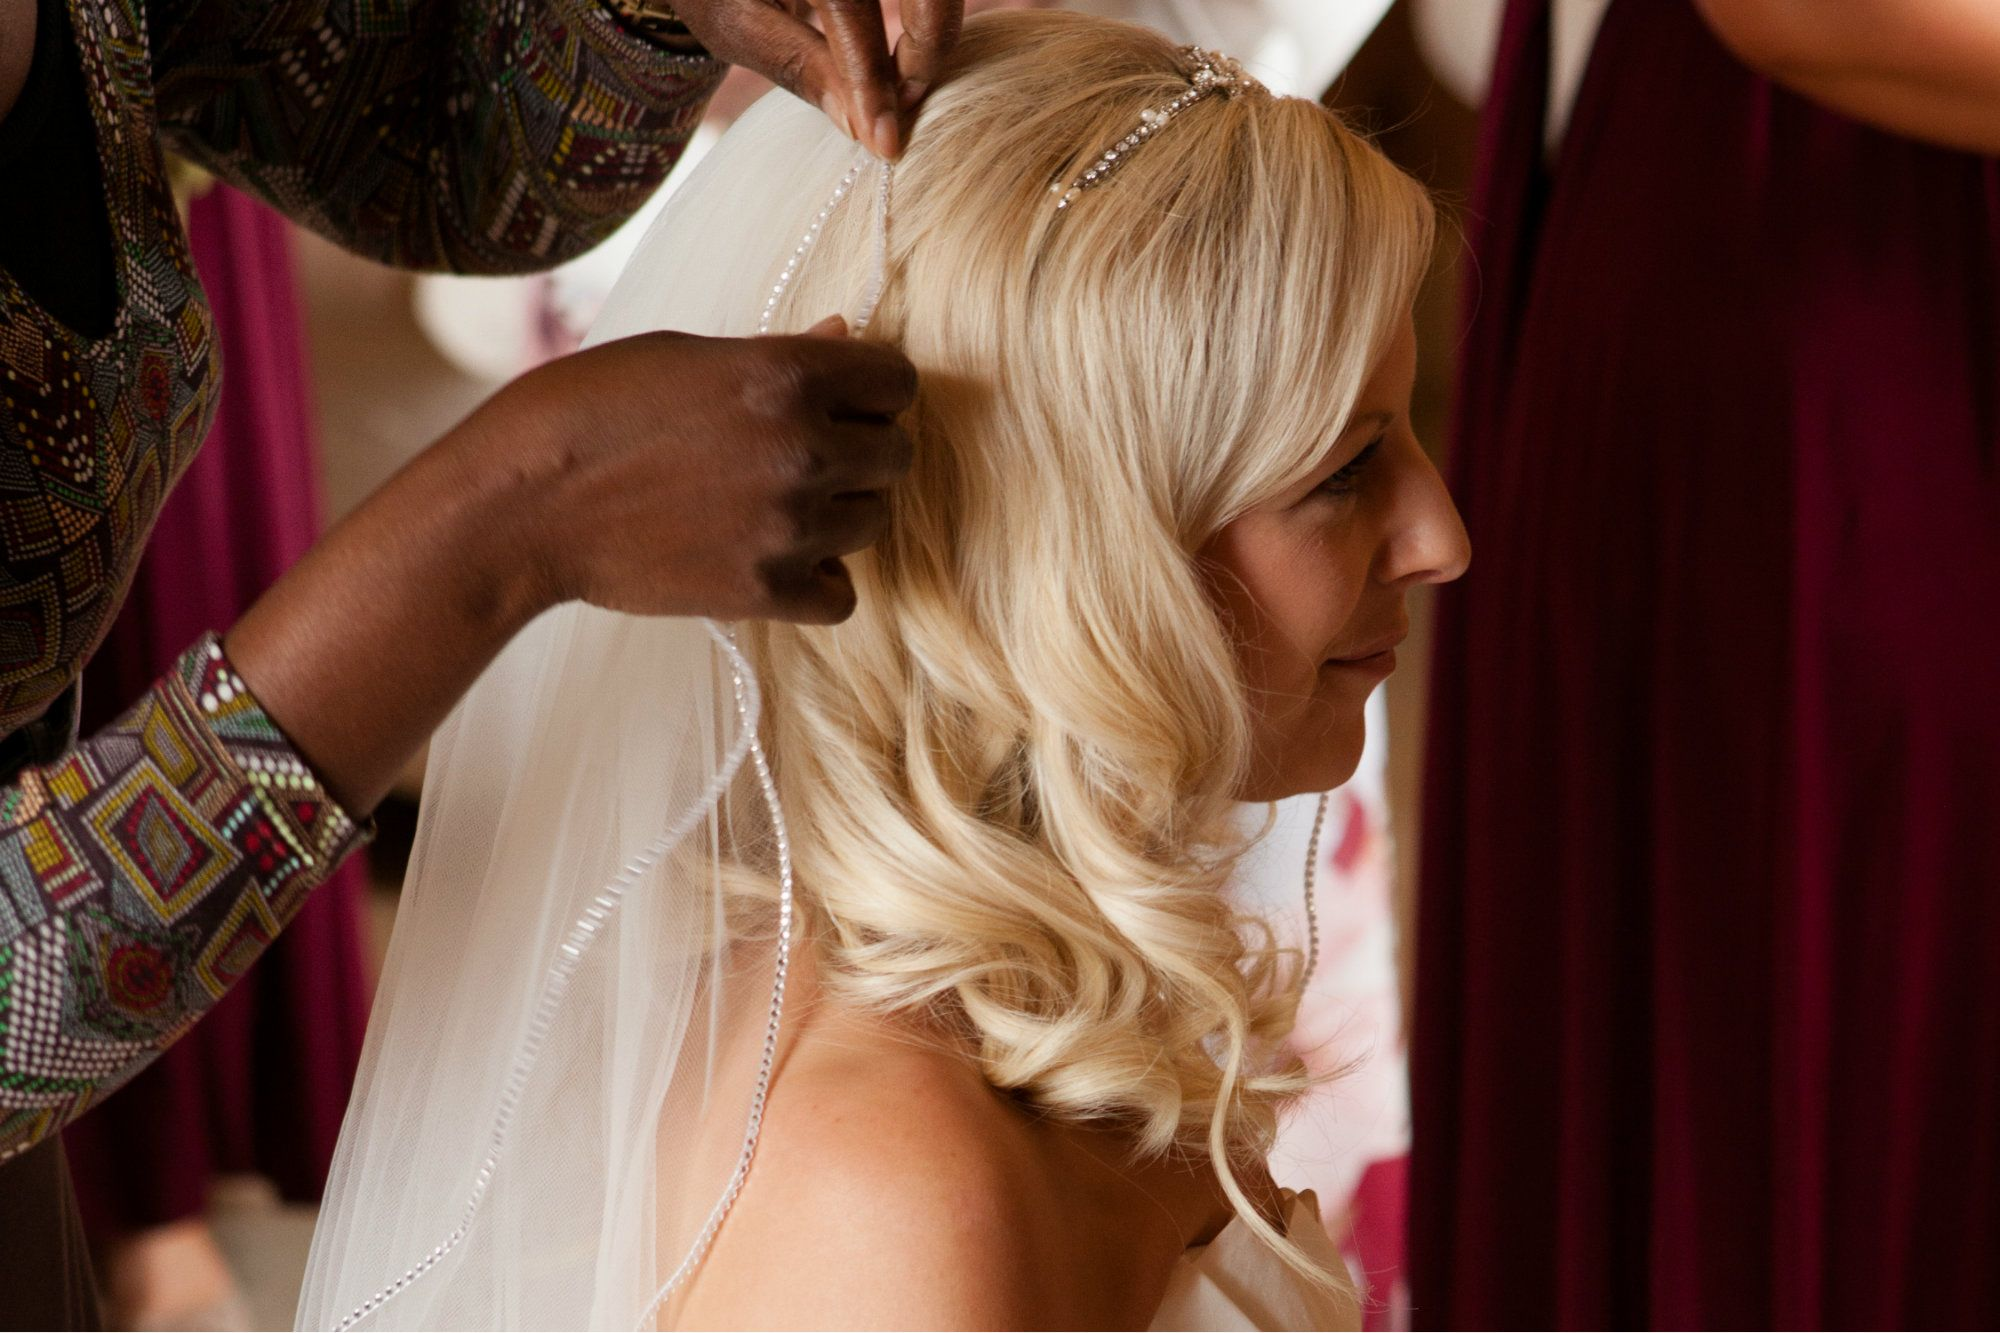 Gloucestershire-wedding-venue-hair-stylist-JNRKWD-1 (6)